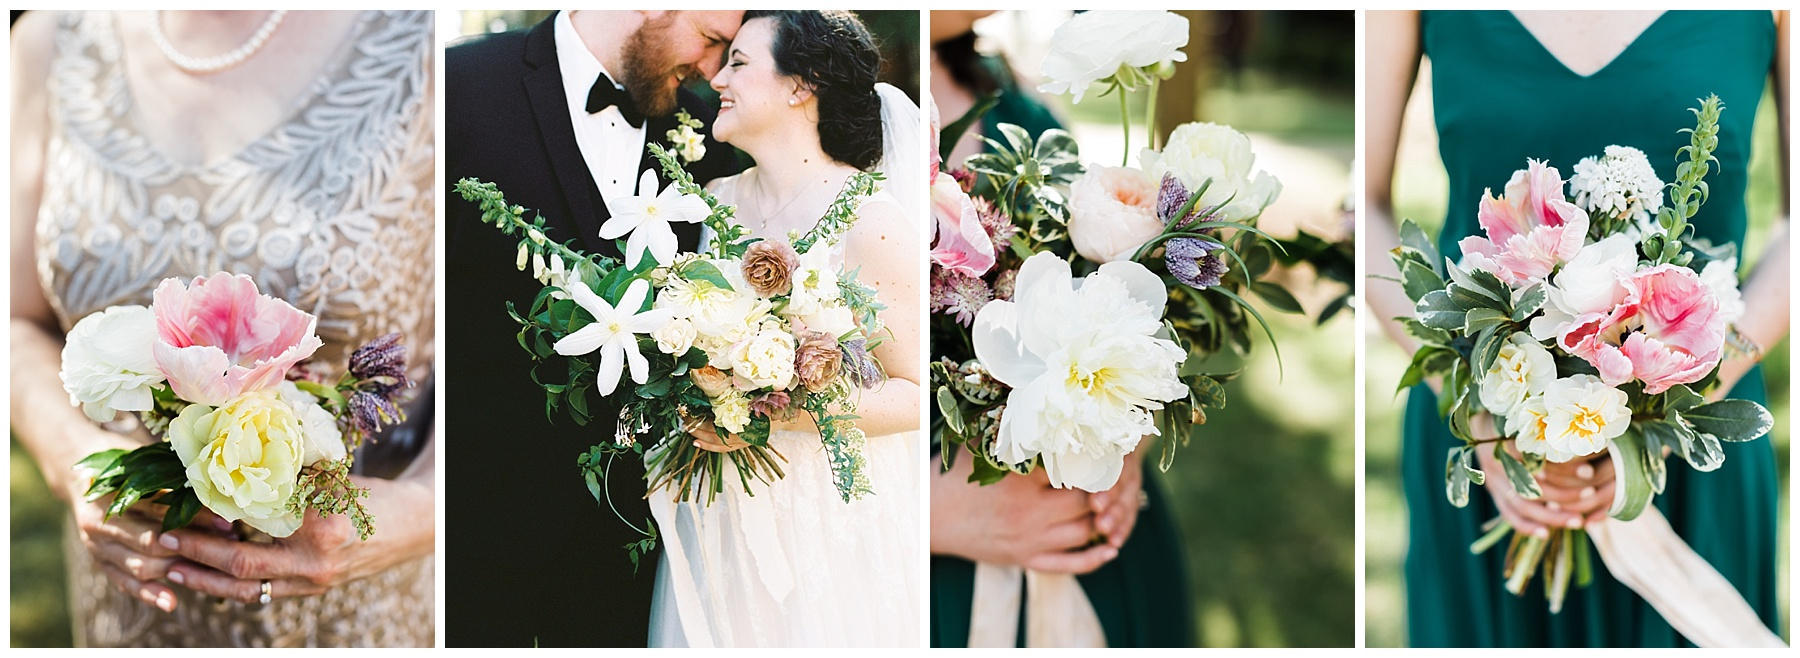 2018-02-27_0003 LeeAnne & William: A Birmingham wedding full of Southern Hospitality Blog Invision Events Weddings    invision_events, birmingham_al, auburn_al, alabama, atlanta_ga, atl, georgia, wedding_planner, wedding_designer, weddings, photography, wedding_planning